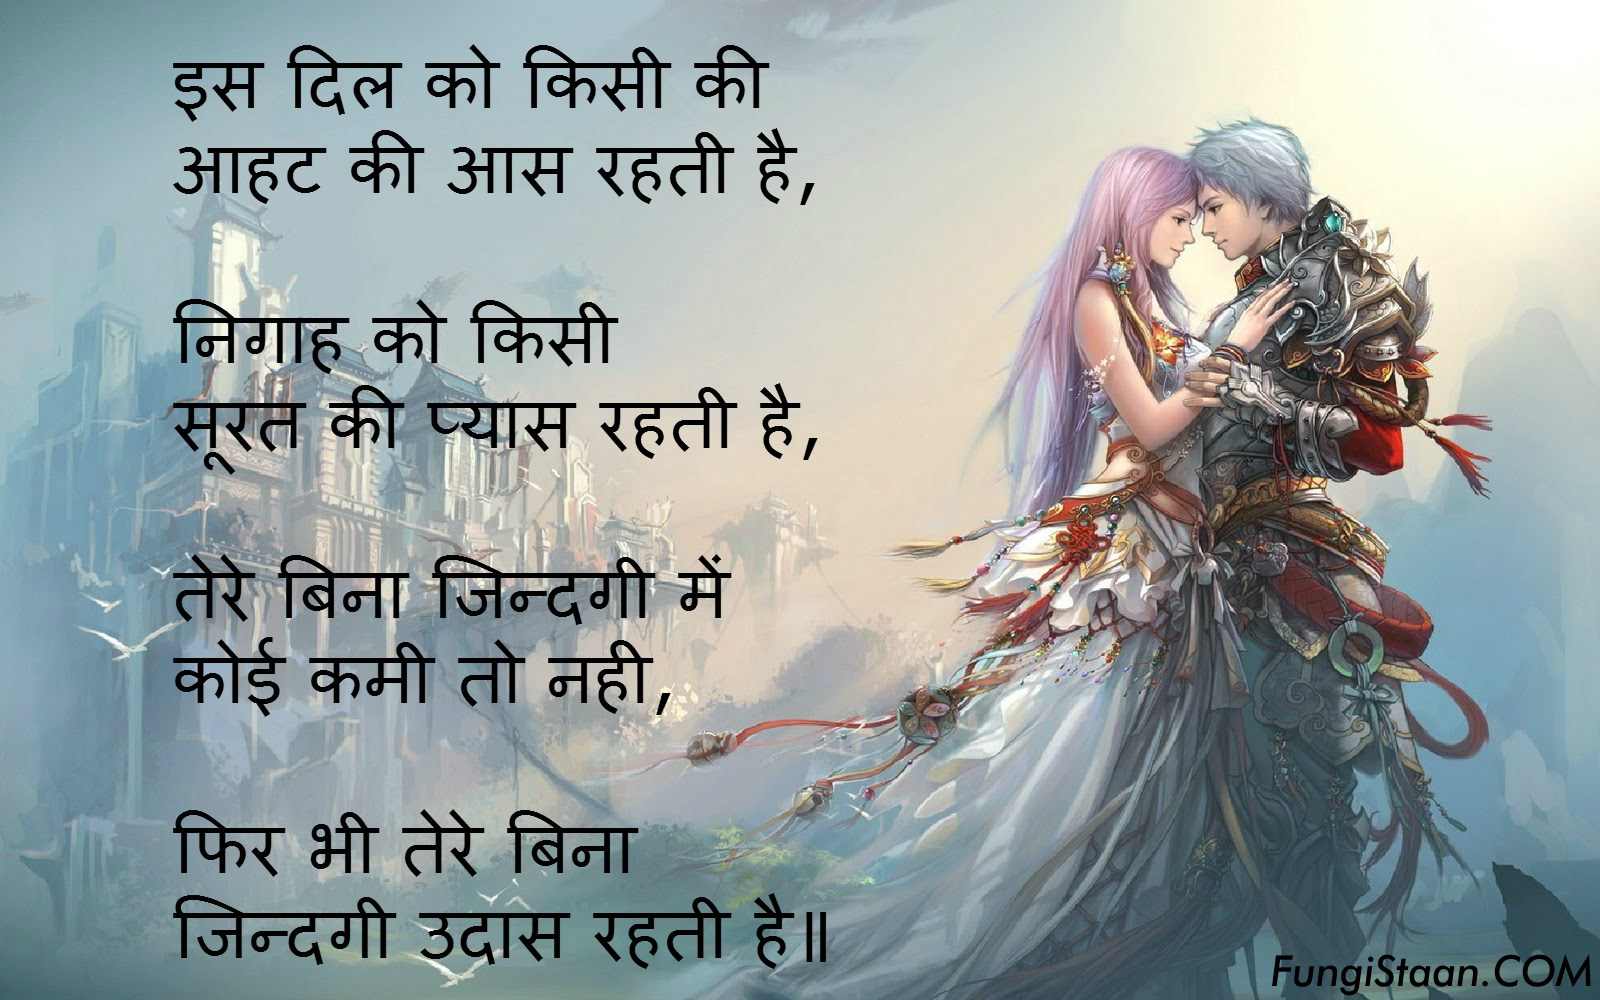 Wallpaper download love shayri - Hindi Shayari Image Free Download